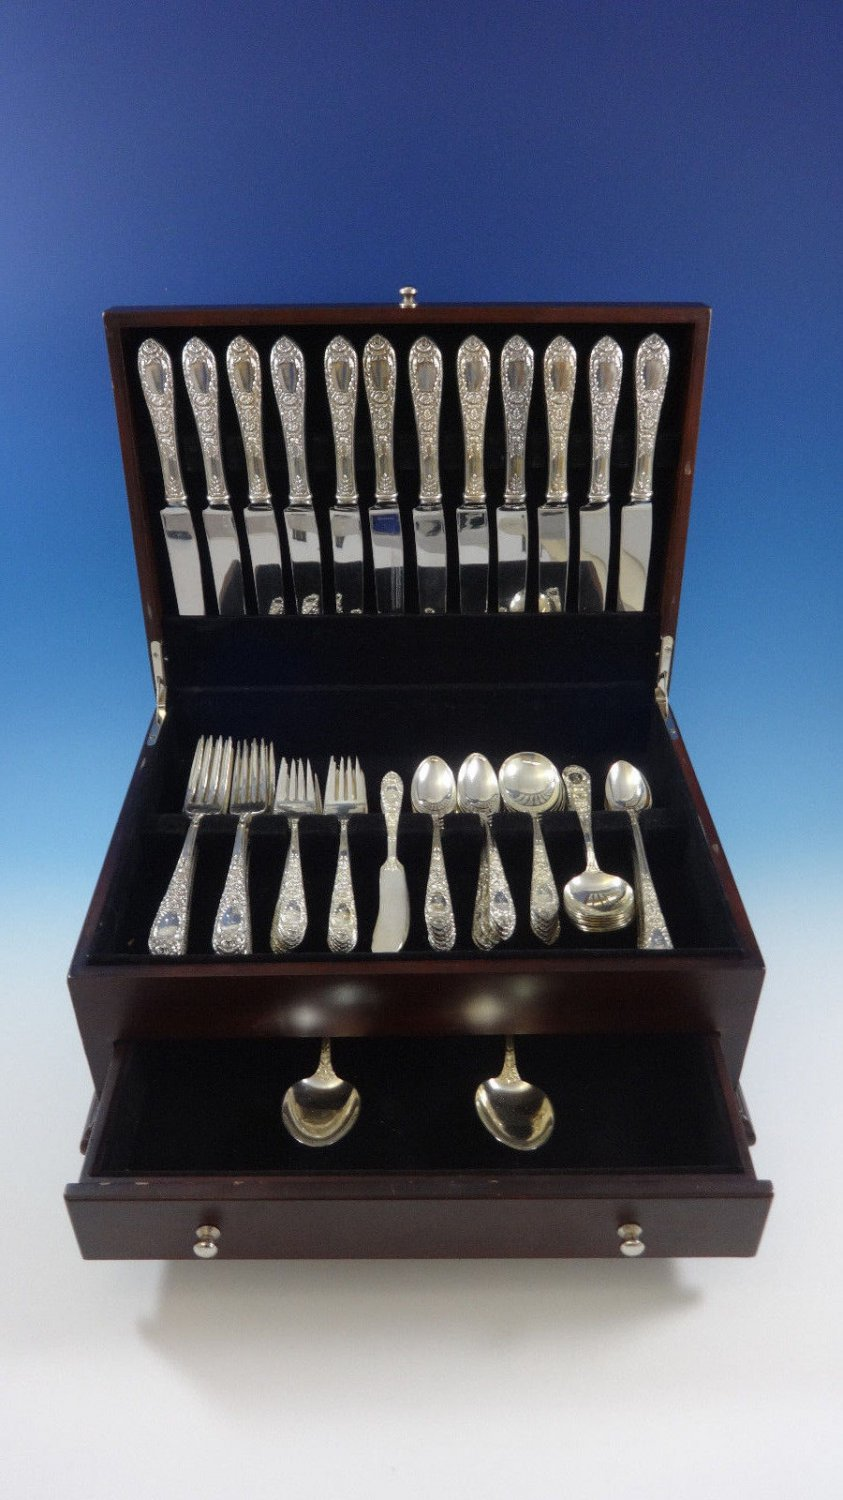 Rose by Kirk Sterling Silver Dinner Size Flatware Set For 12 Service 86 Pieces